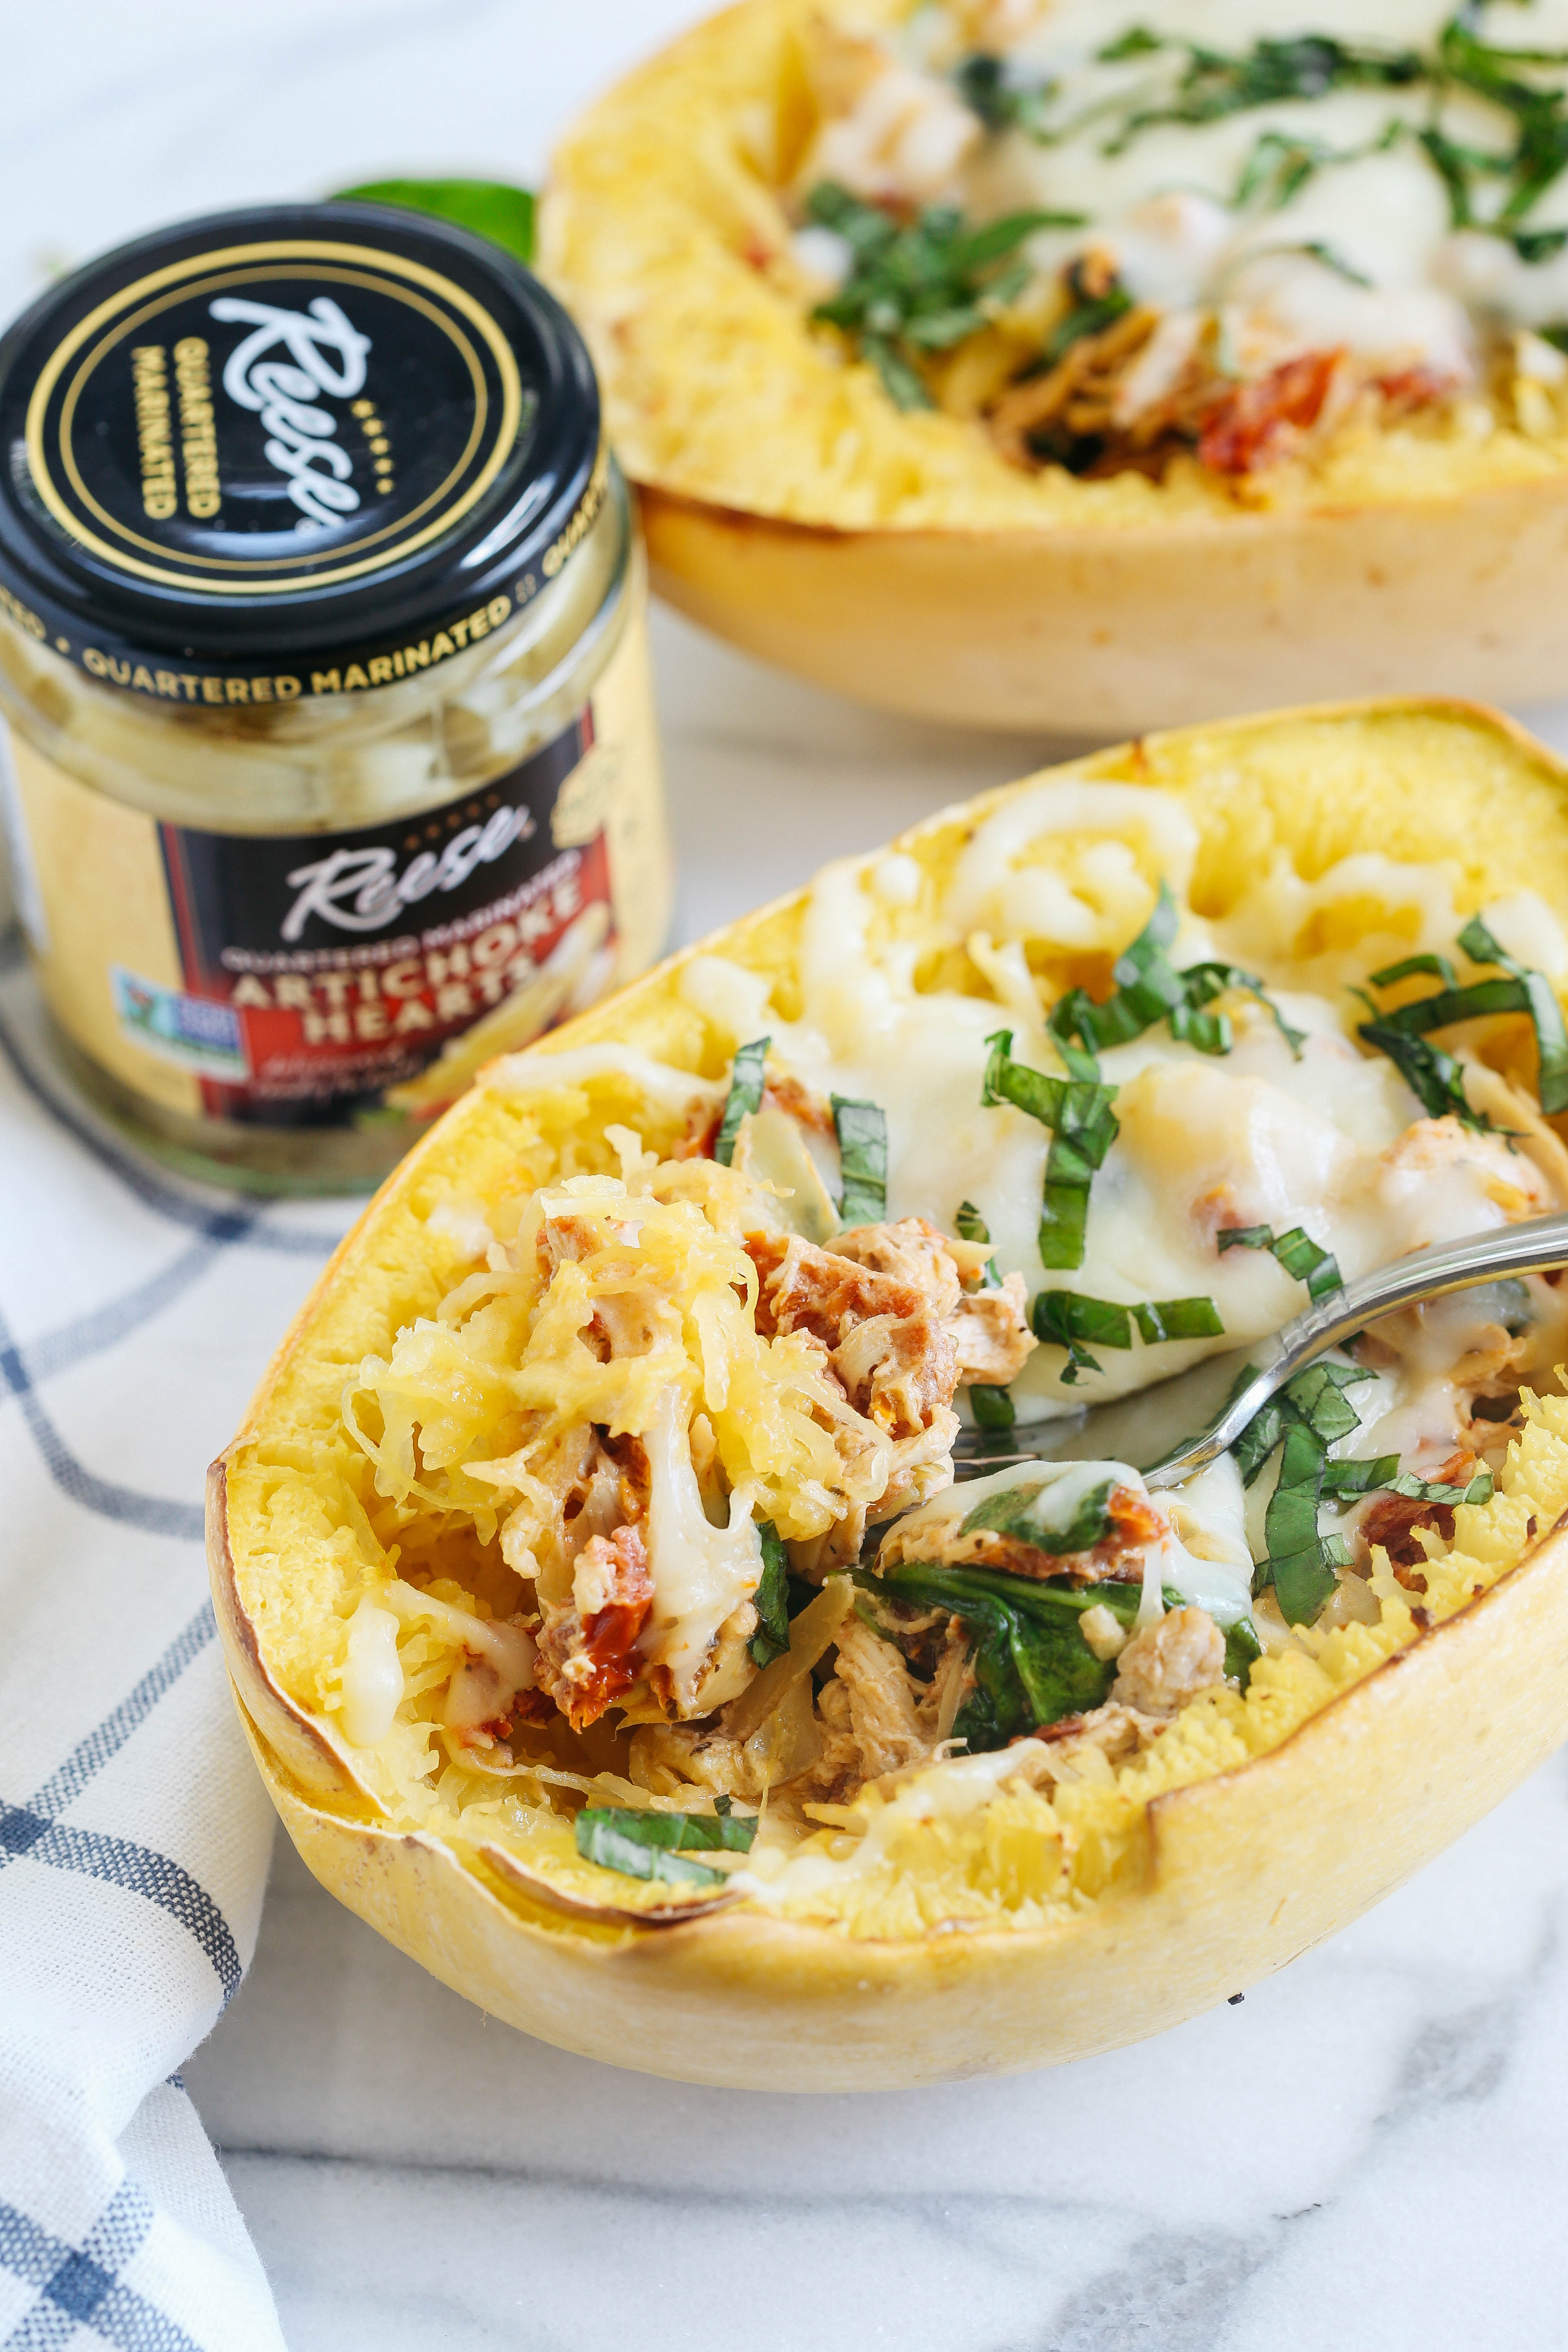 These Sun Dried Tomato and Artichoke Spaghetti Squash Boats are cheesy, delicious and make the perfect weeknight comfort meal that you can enjoy guilt-free!